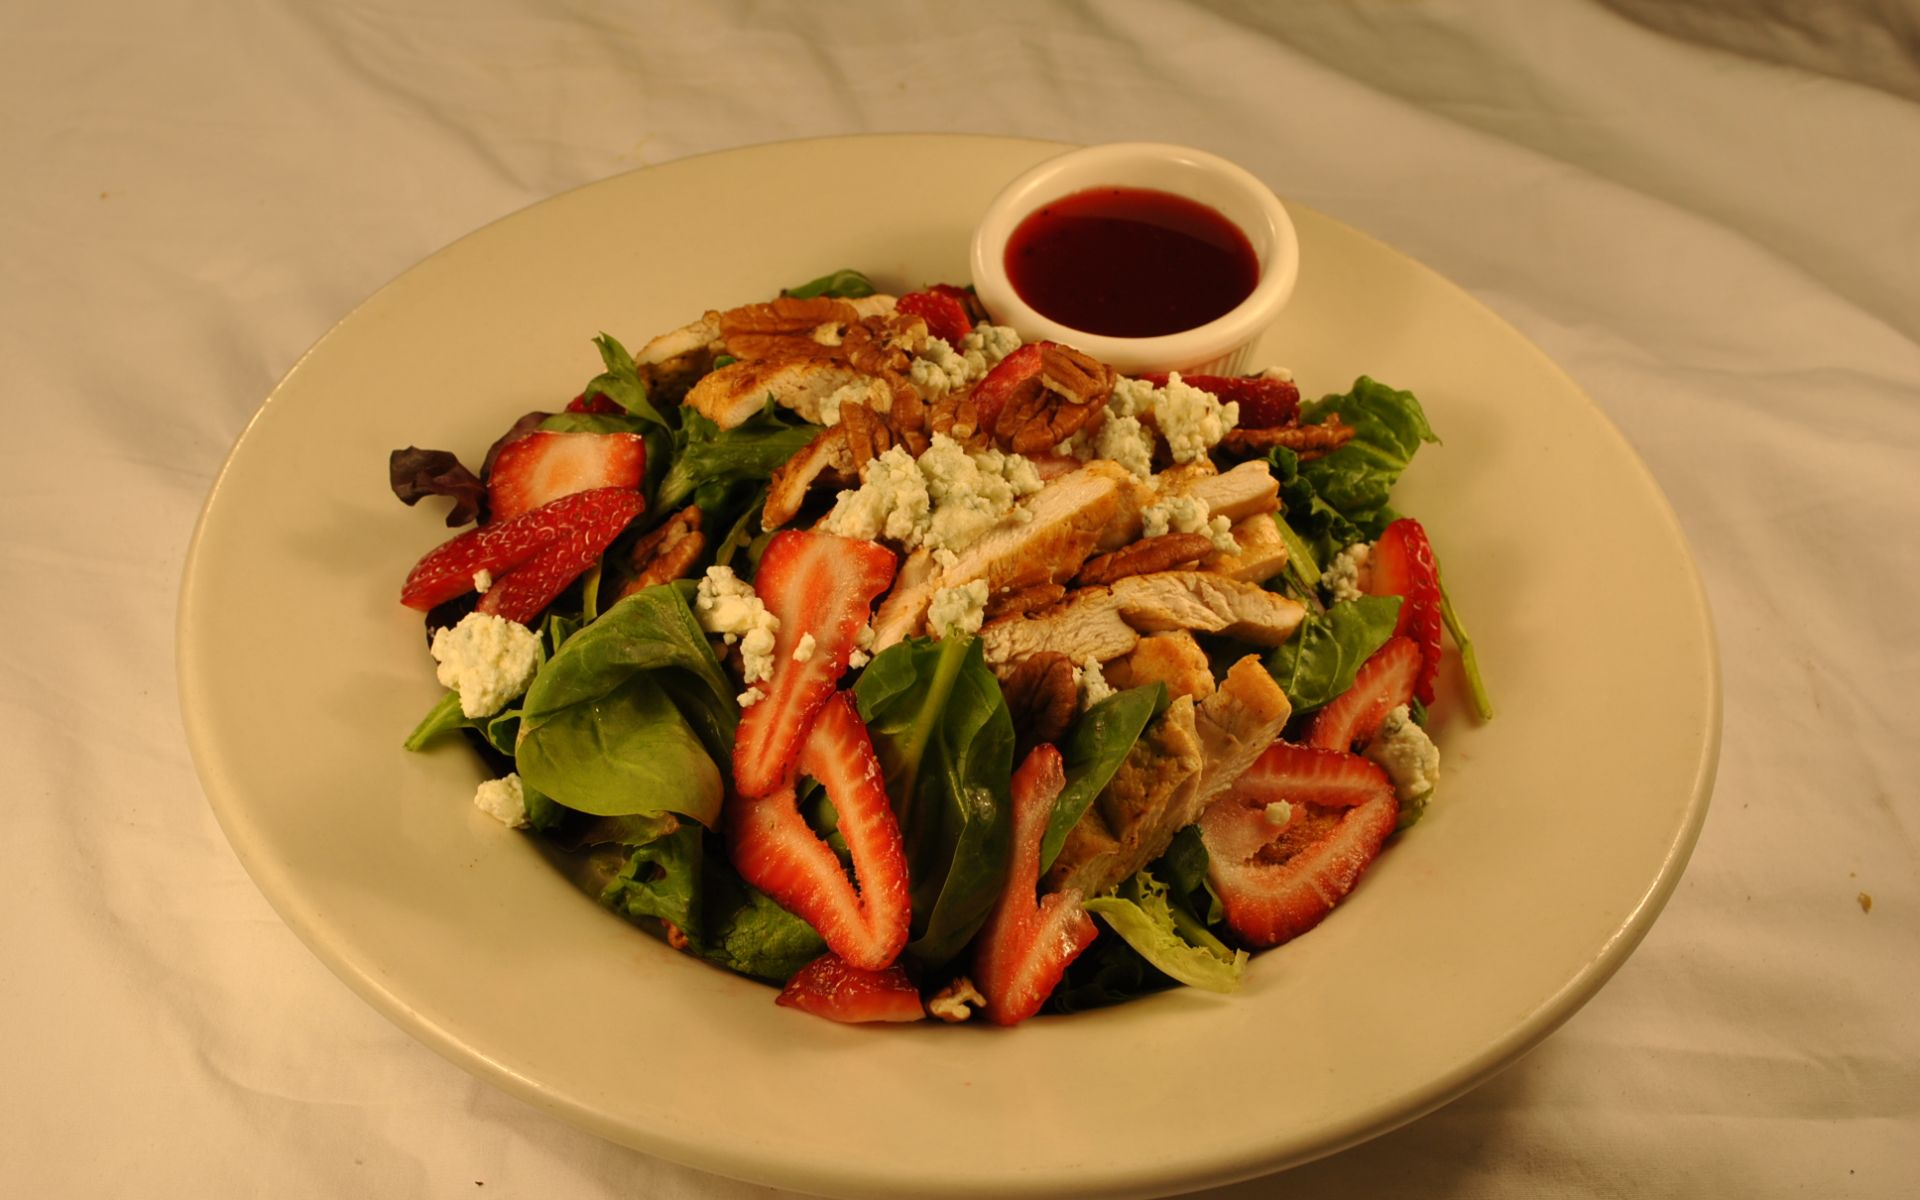 Strawberry chicken mixed green salad with bleu cheese and walnuts